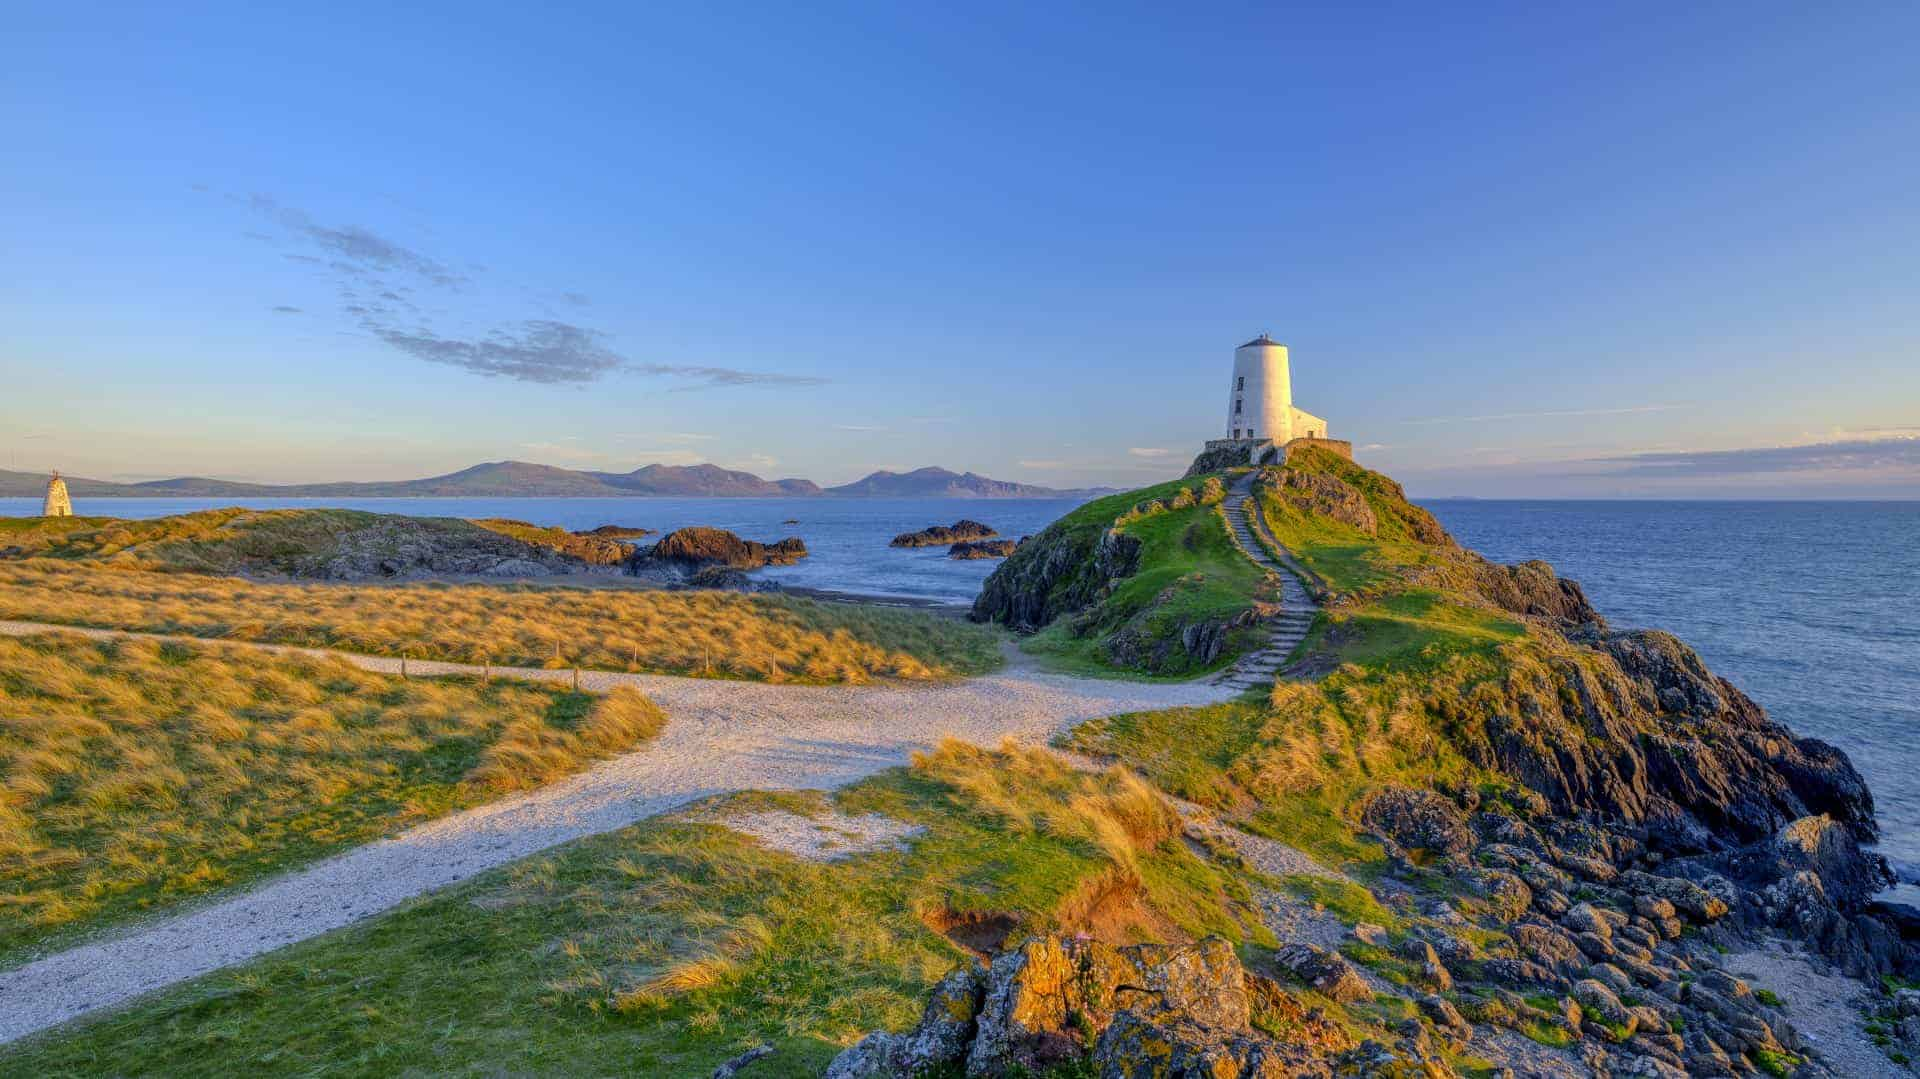 Twr Mar Lighthouse on Llanddwyn Island off Anglesey, Wales UK